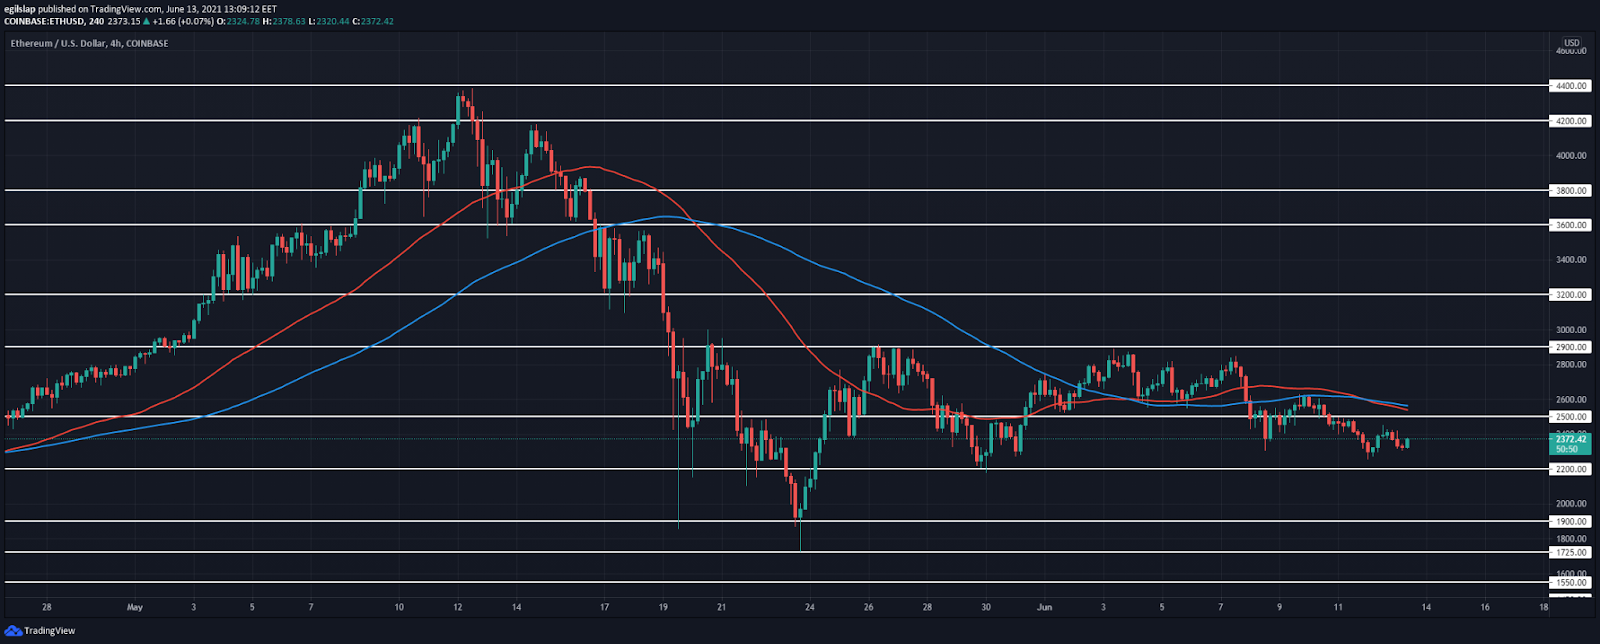 Ethereum price analysis: Ethereum fails to move below $2,200, reversal today?